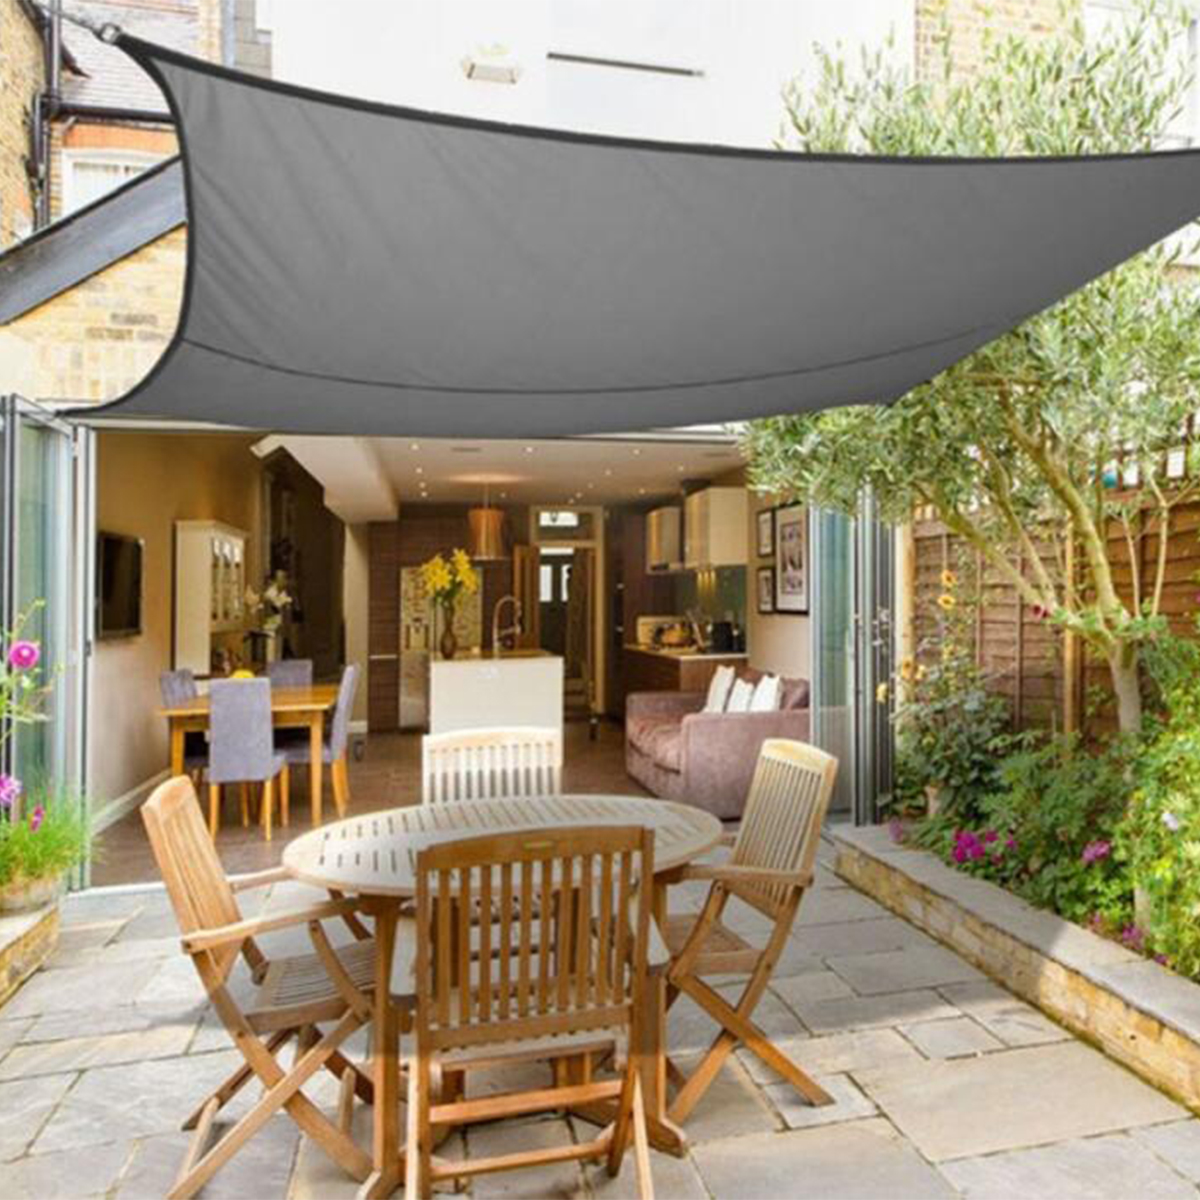 300D 160GSM Outdoor Heavy Duty Sun Shade Sail Waterproof UV Proof Tent Canopy Sunshade Shelter